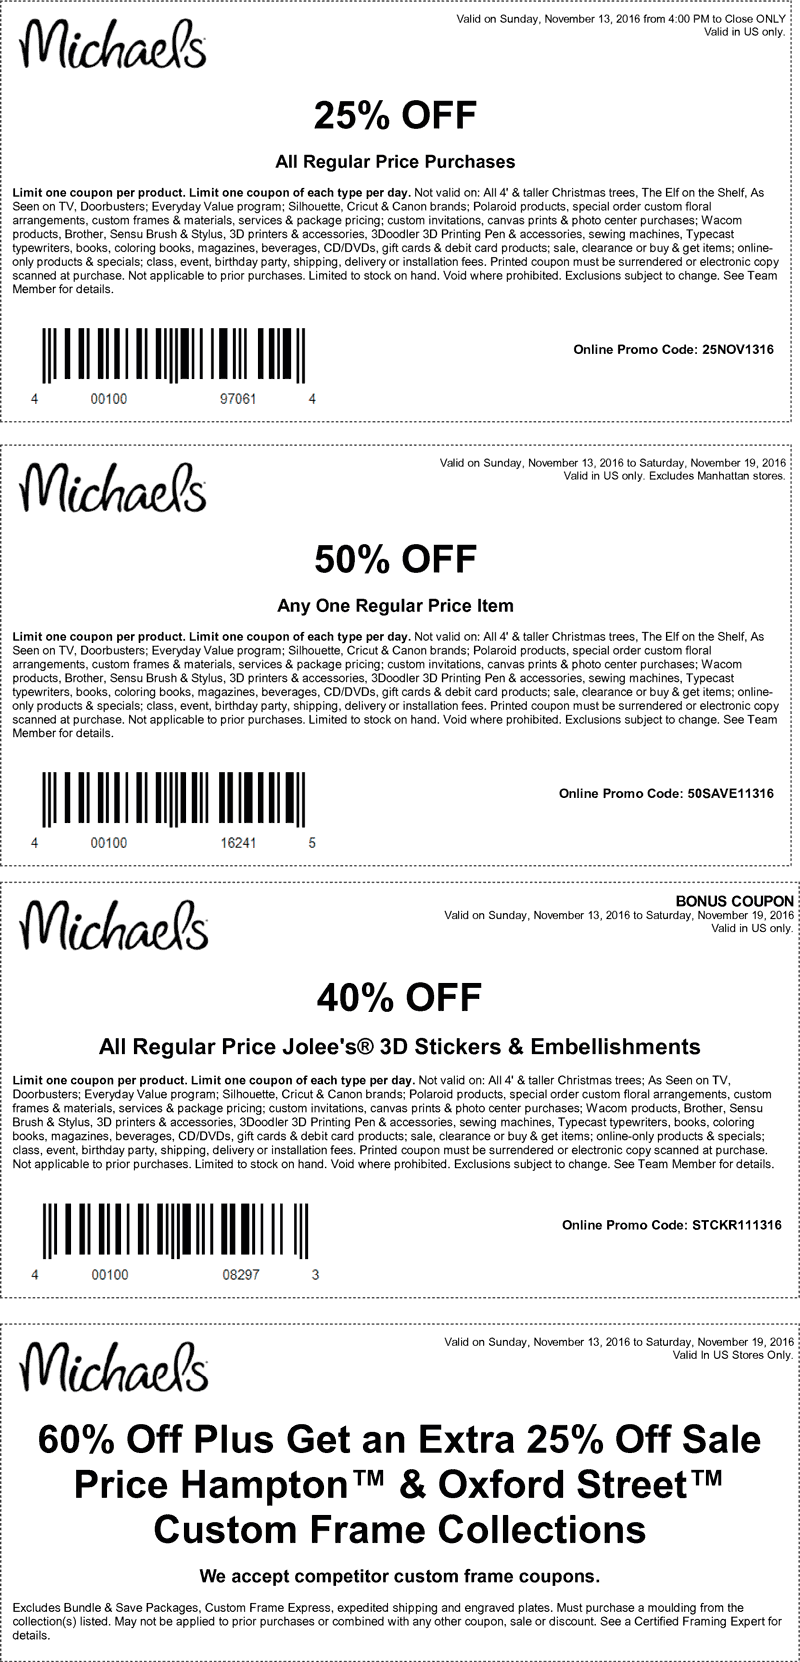 Michaels Coupon August 2018 50% off a single item & more at Michaels, or online via promo code 50SAVE11316